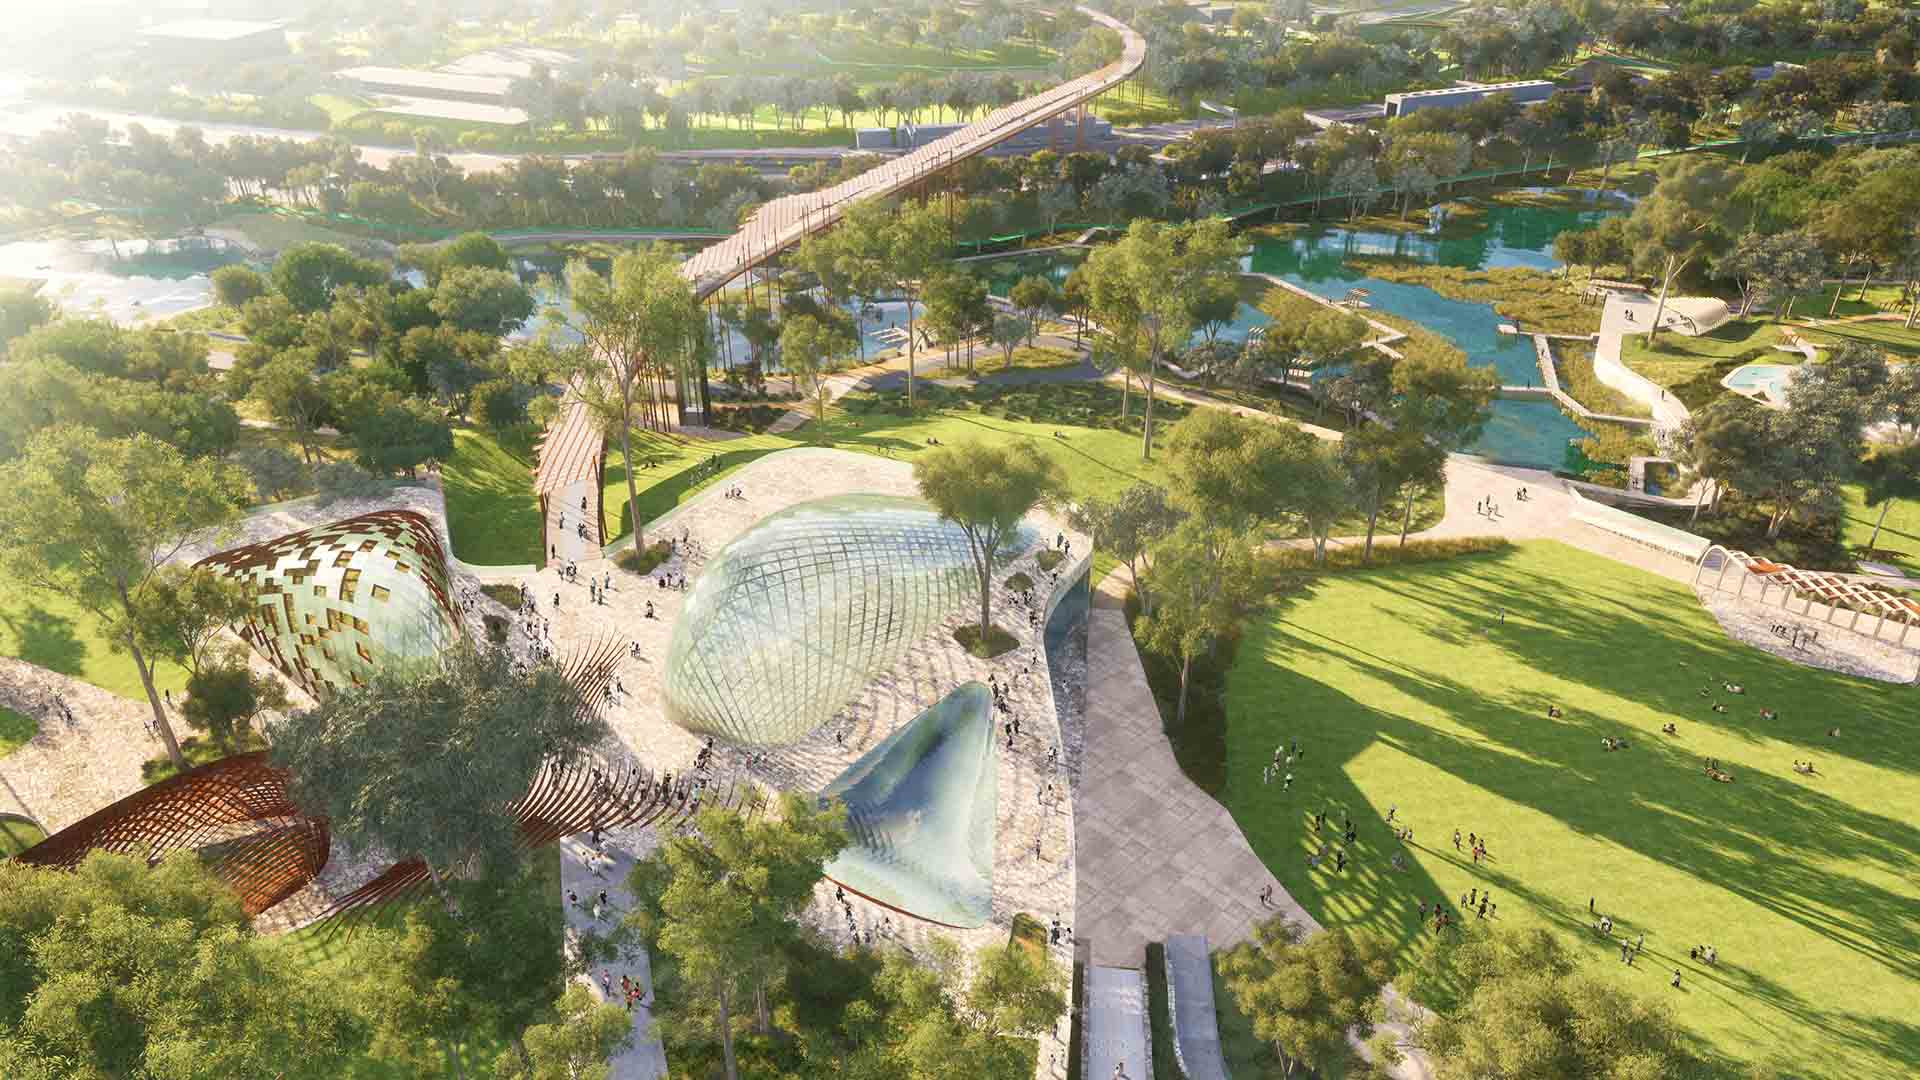 This Is What Brisbane's New 45-Hectare Inner-City Public Park Could Look Like